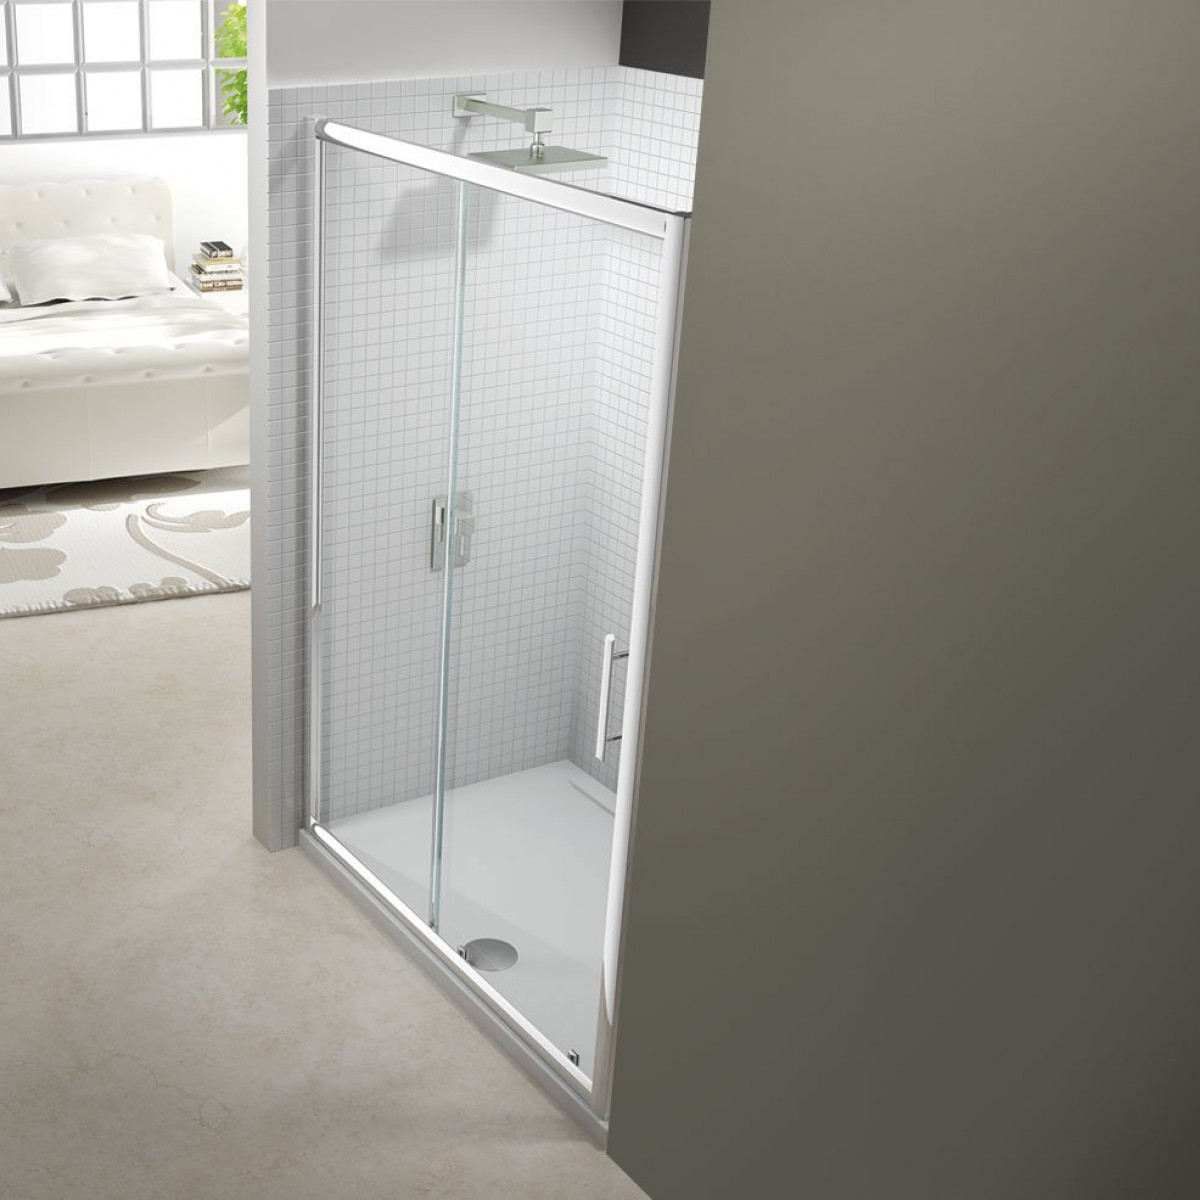 Merlyn 6 series 1000mm sliding shower door for 1000mm shower door